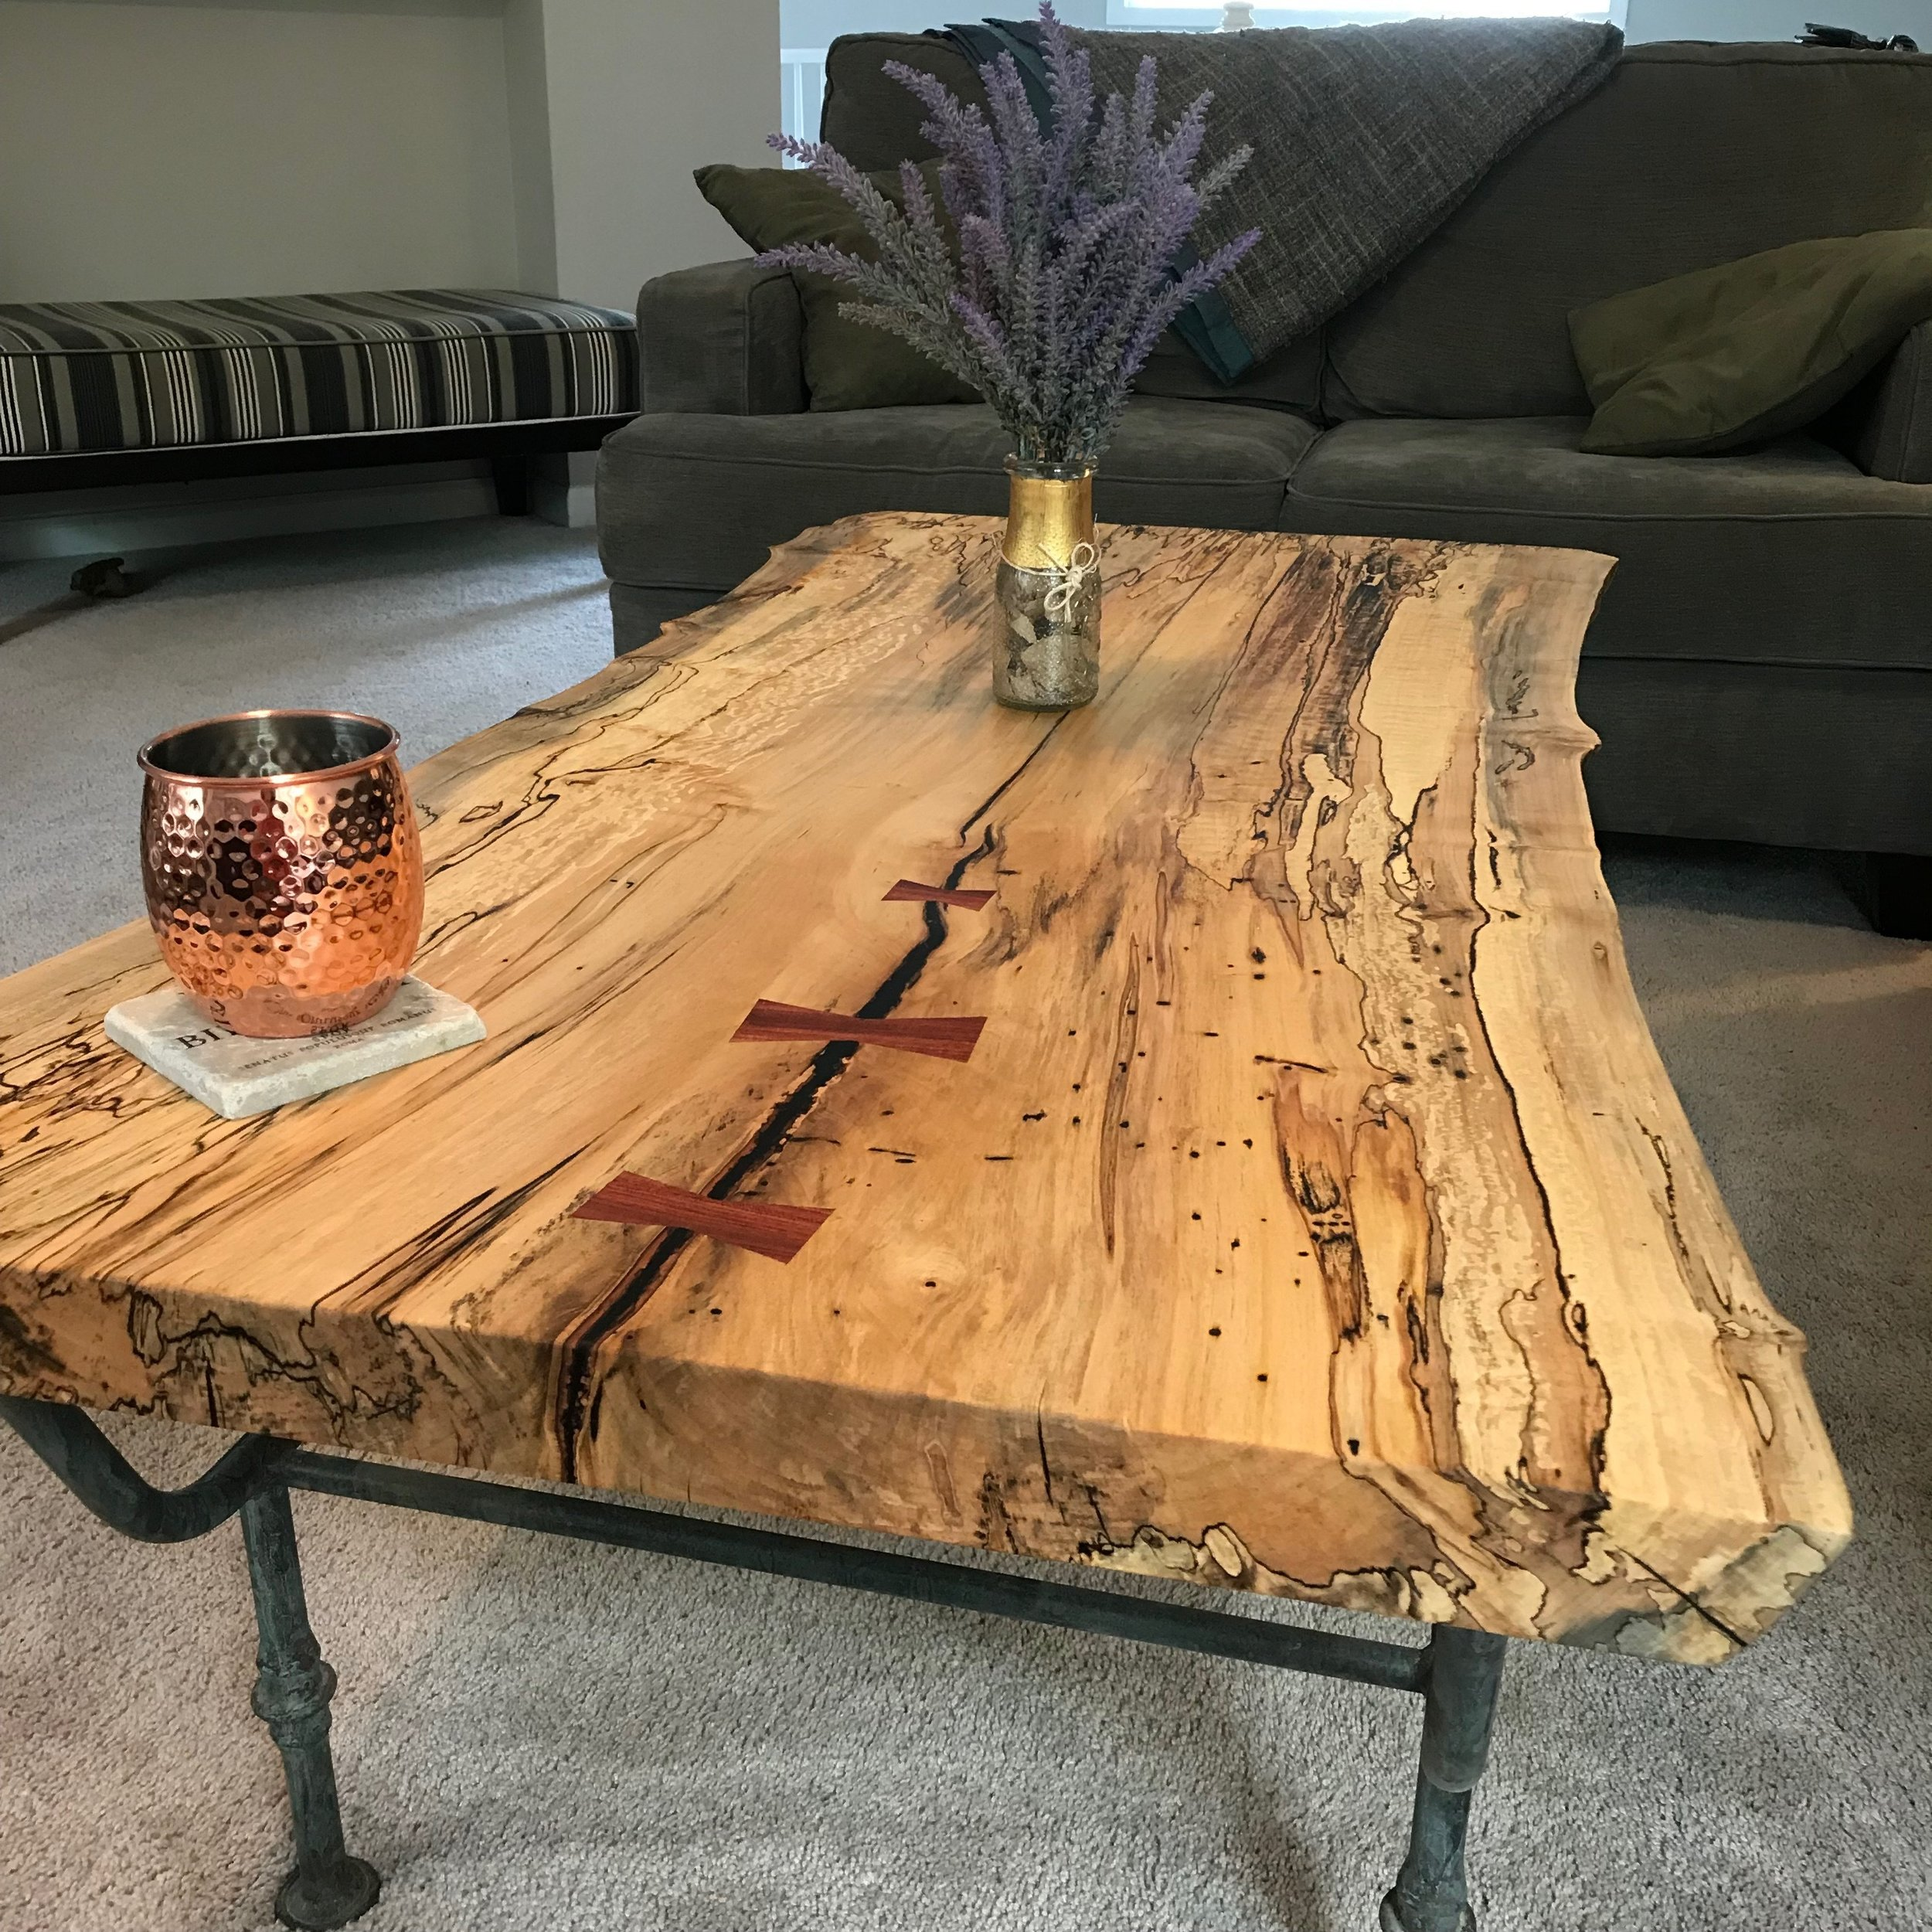 Spalted Maple Coffee Table.JPG